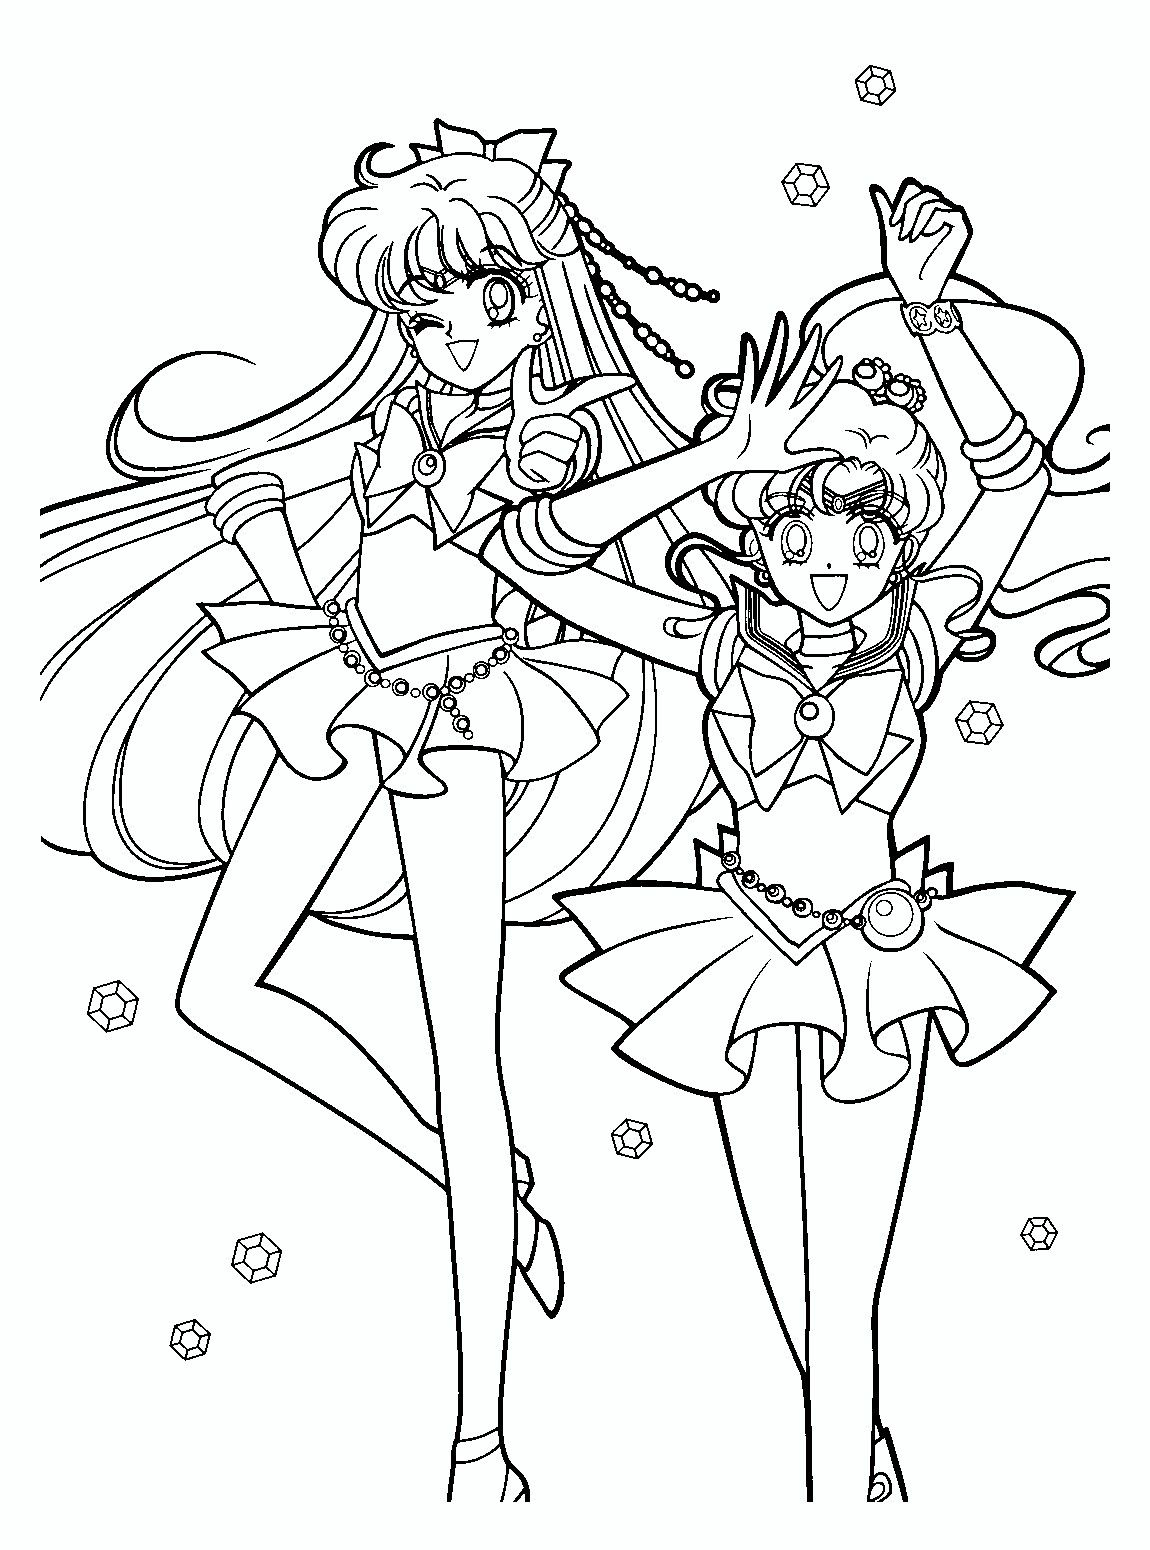 Sailor Moon Series Coloring Pages Venus And Jupiter